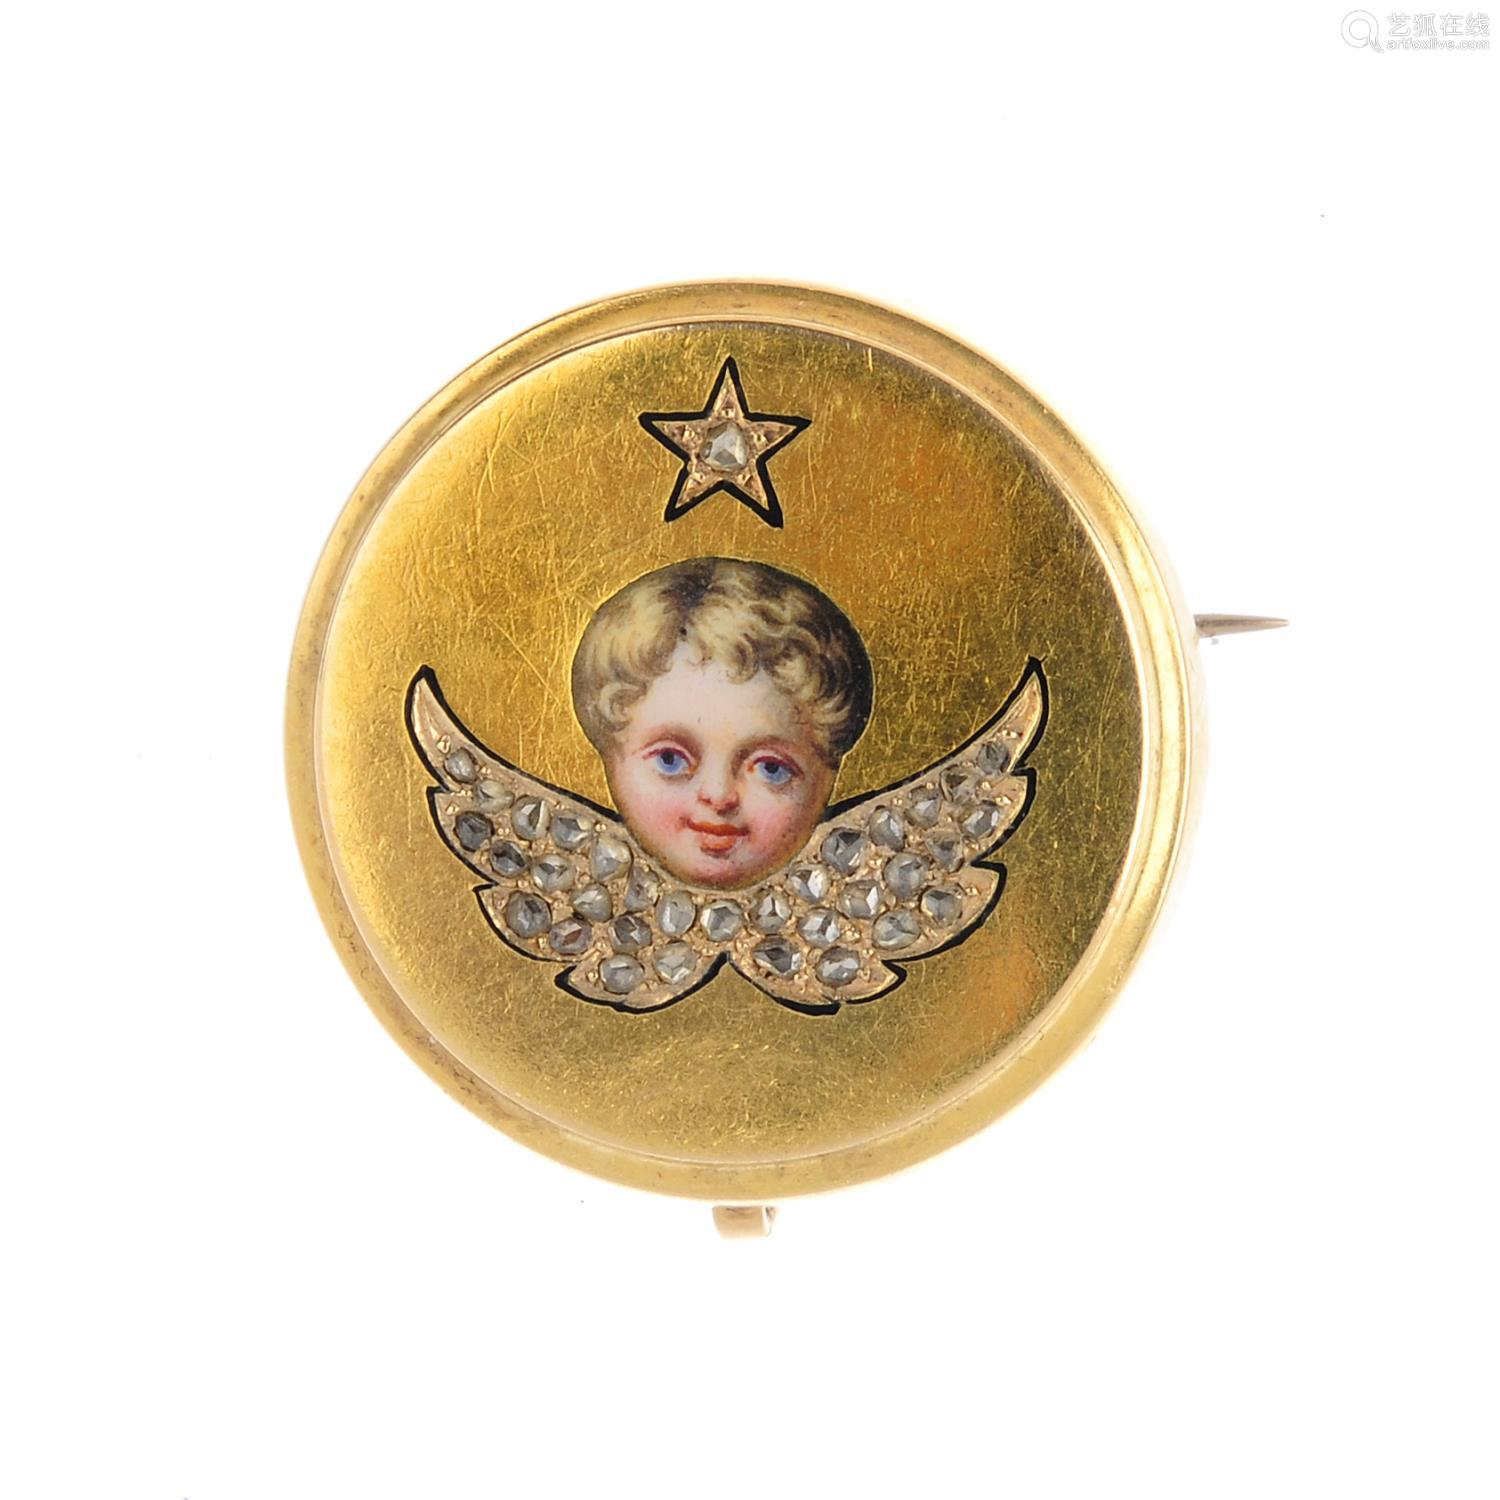 A late Victorian gold, diamond and enamel cherub brooch. The painted enamel face, with rose-cut